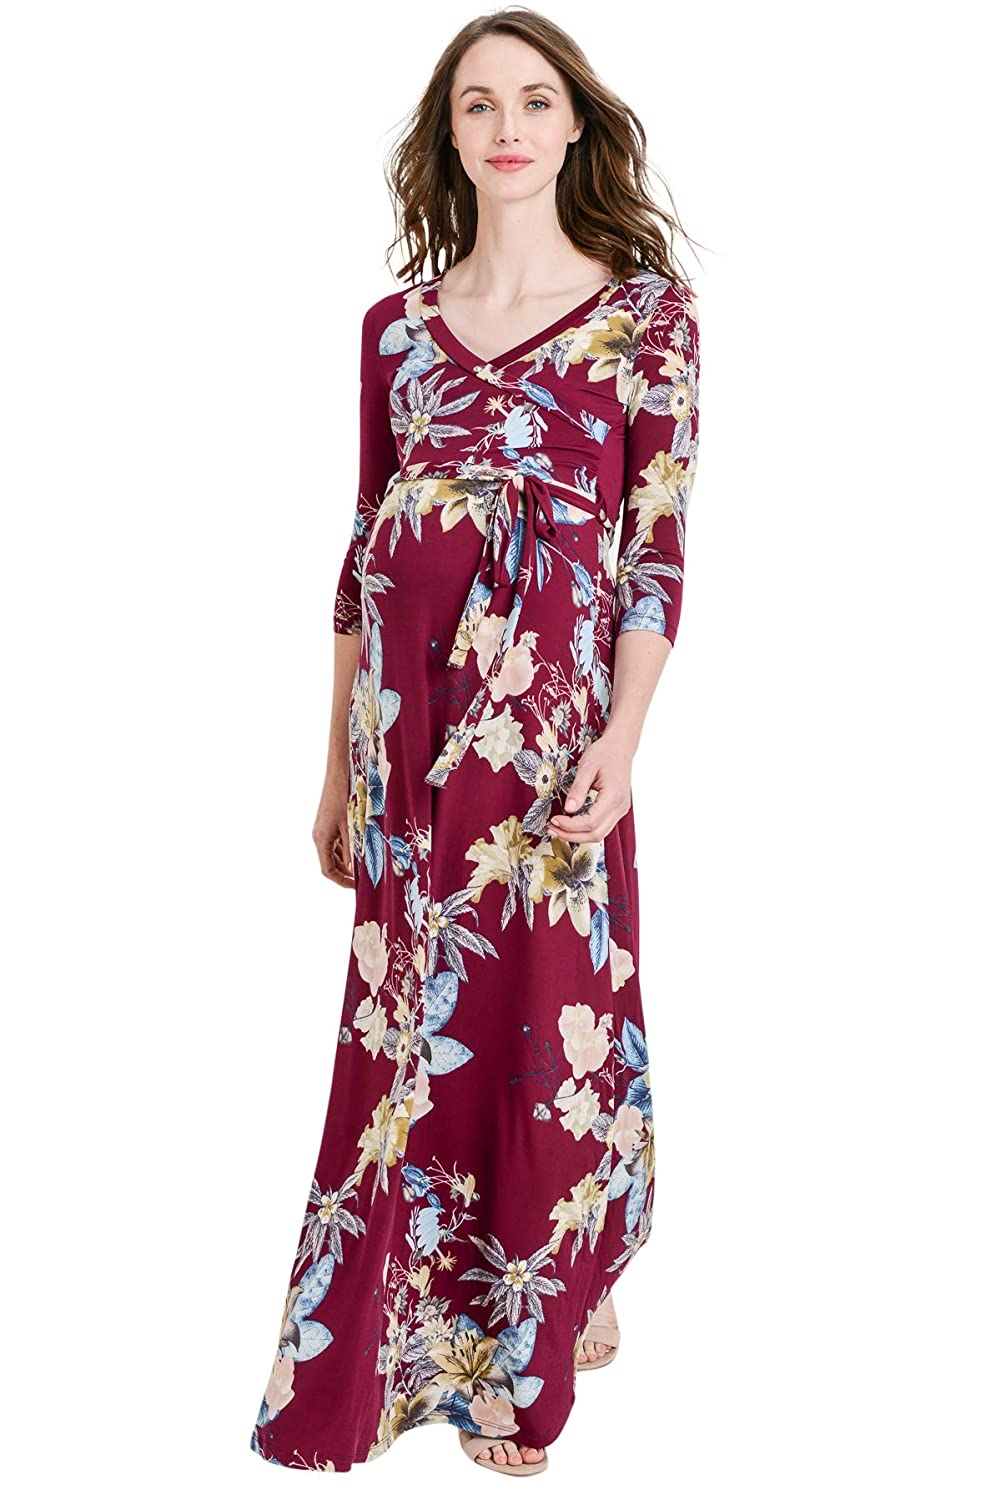 Wine Flower Hello MIZ LaClef Women's Floral Print Draped 3 4 Sleeve Long Maxi Maternity Dress